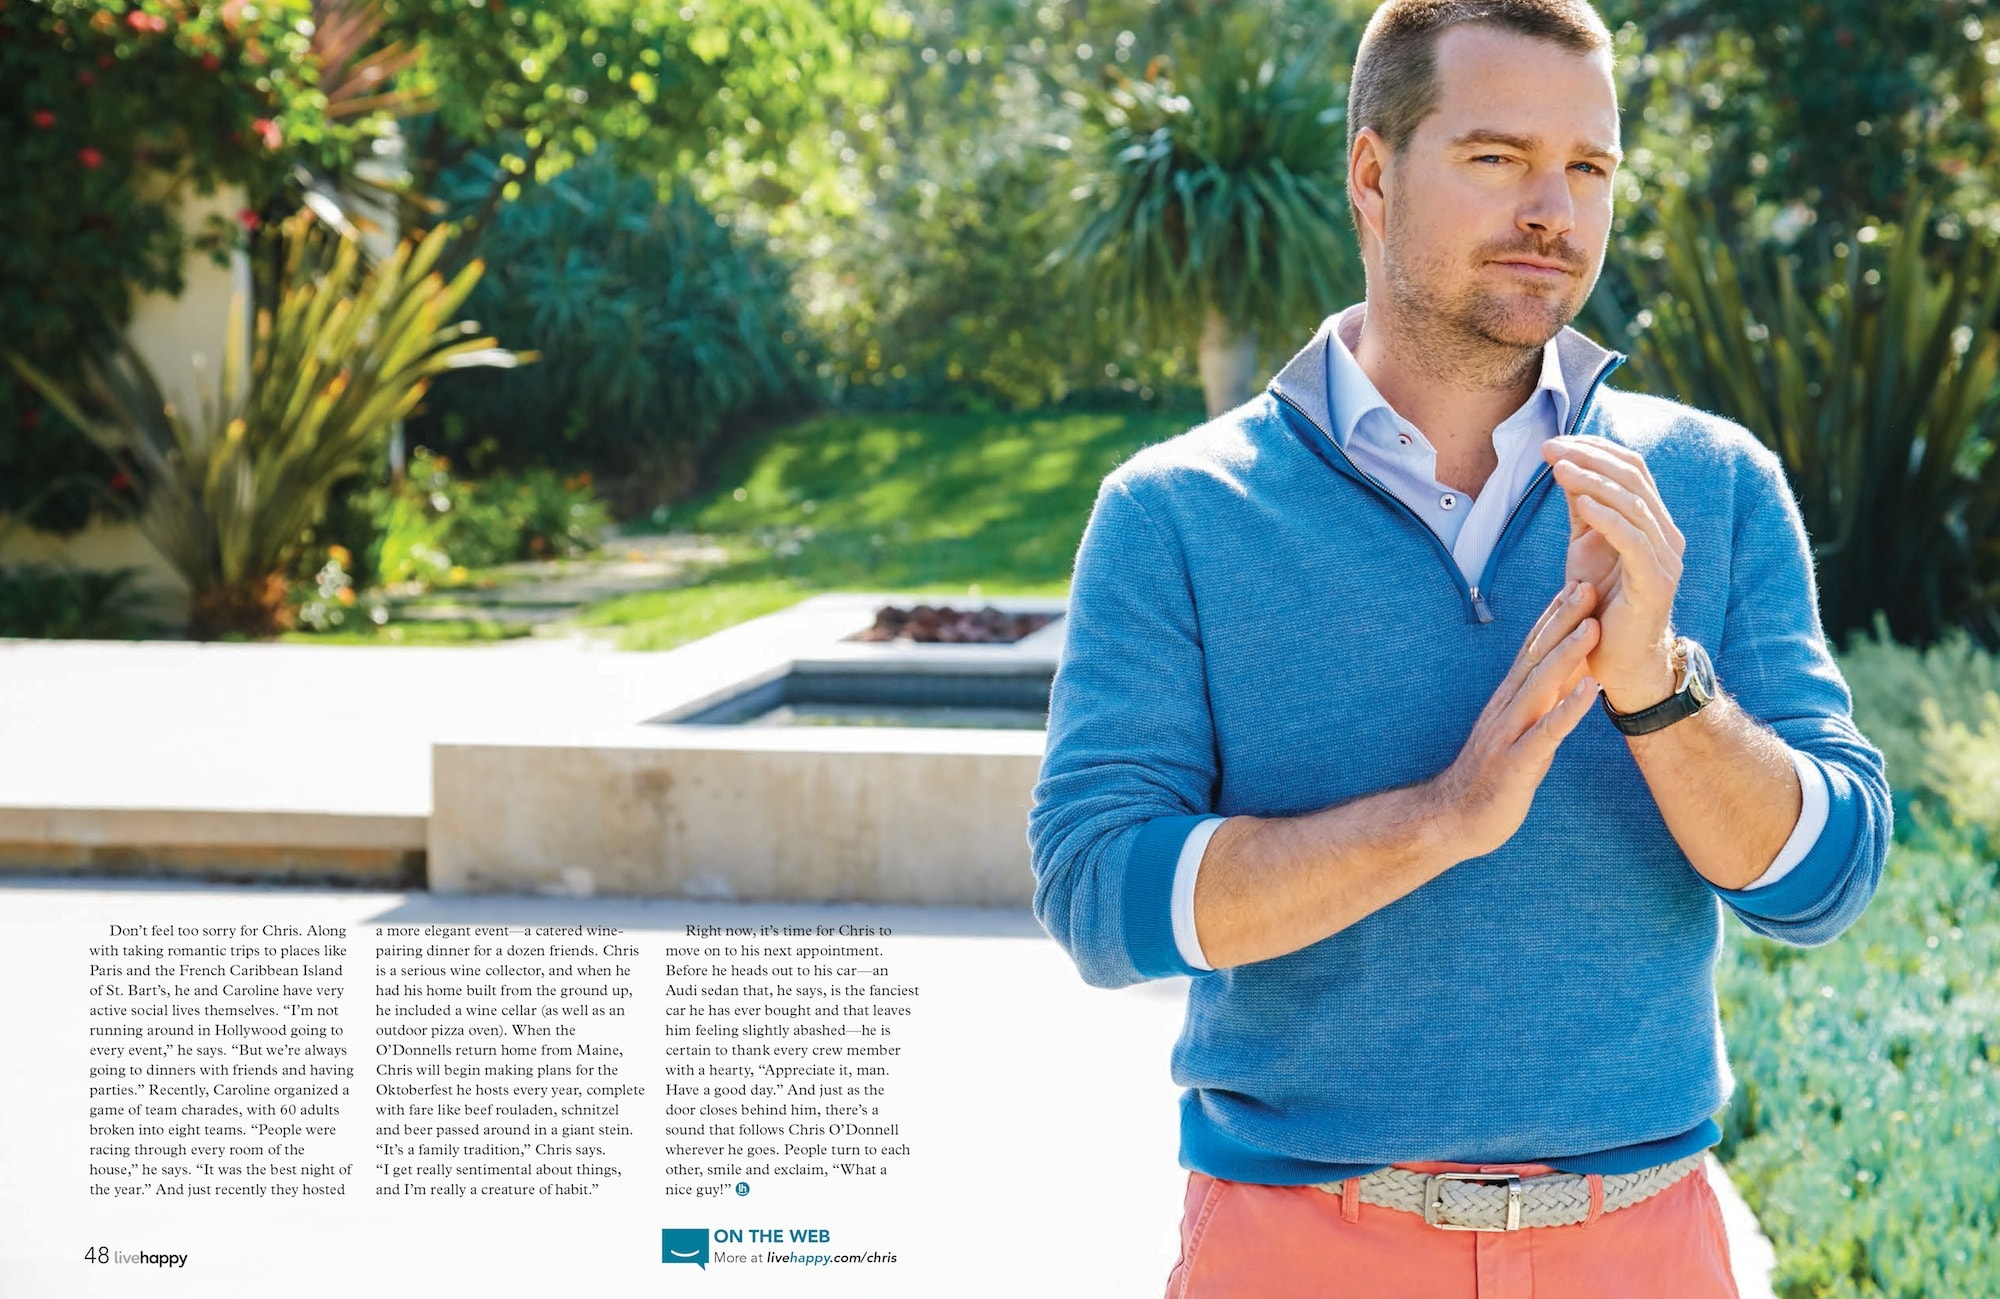 Chris O'Donnell Full hd wallpapers